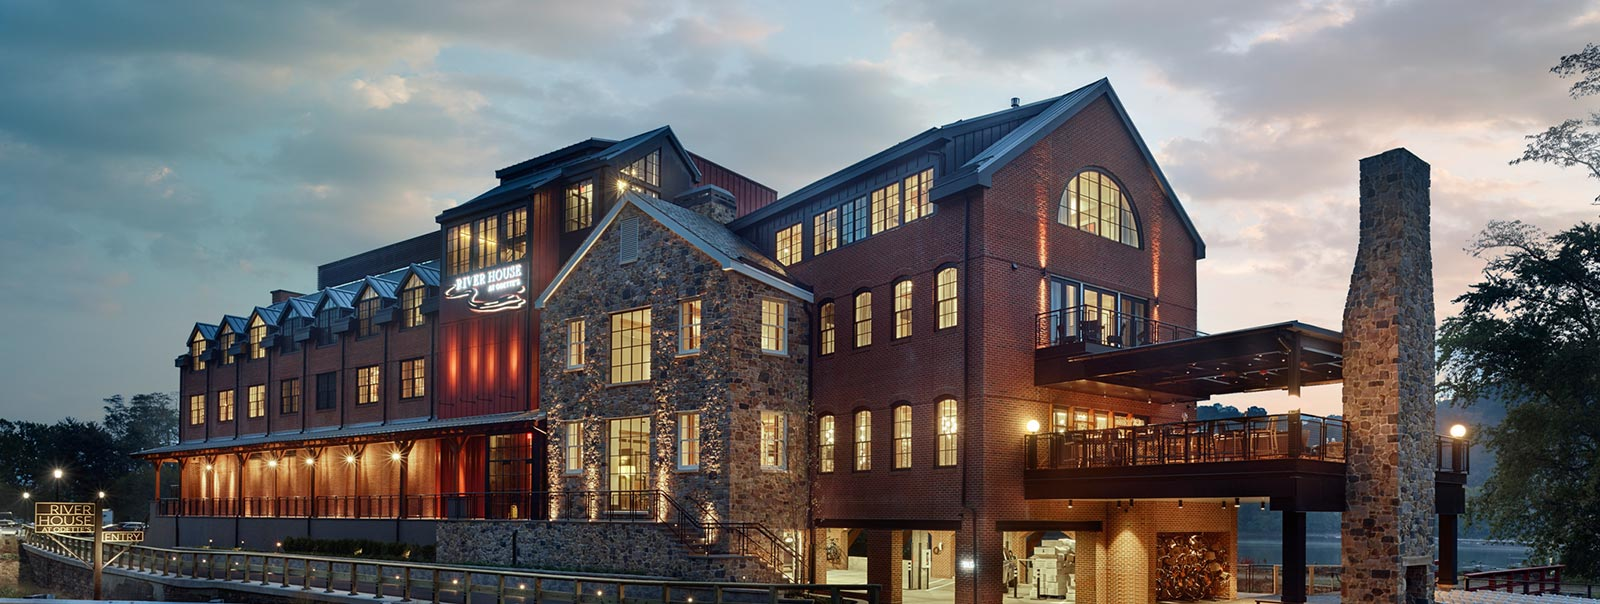 New Hope's All-New Luxury Lifestyle Hotel